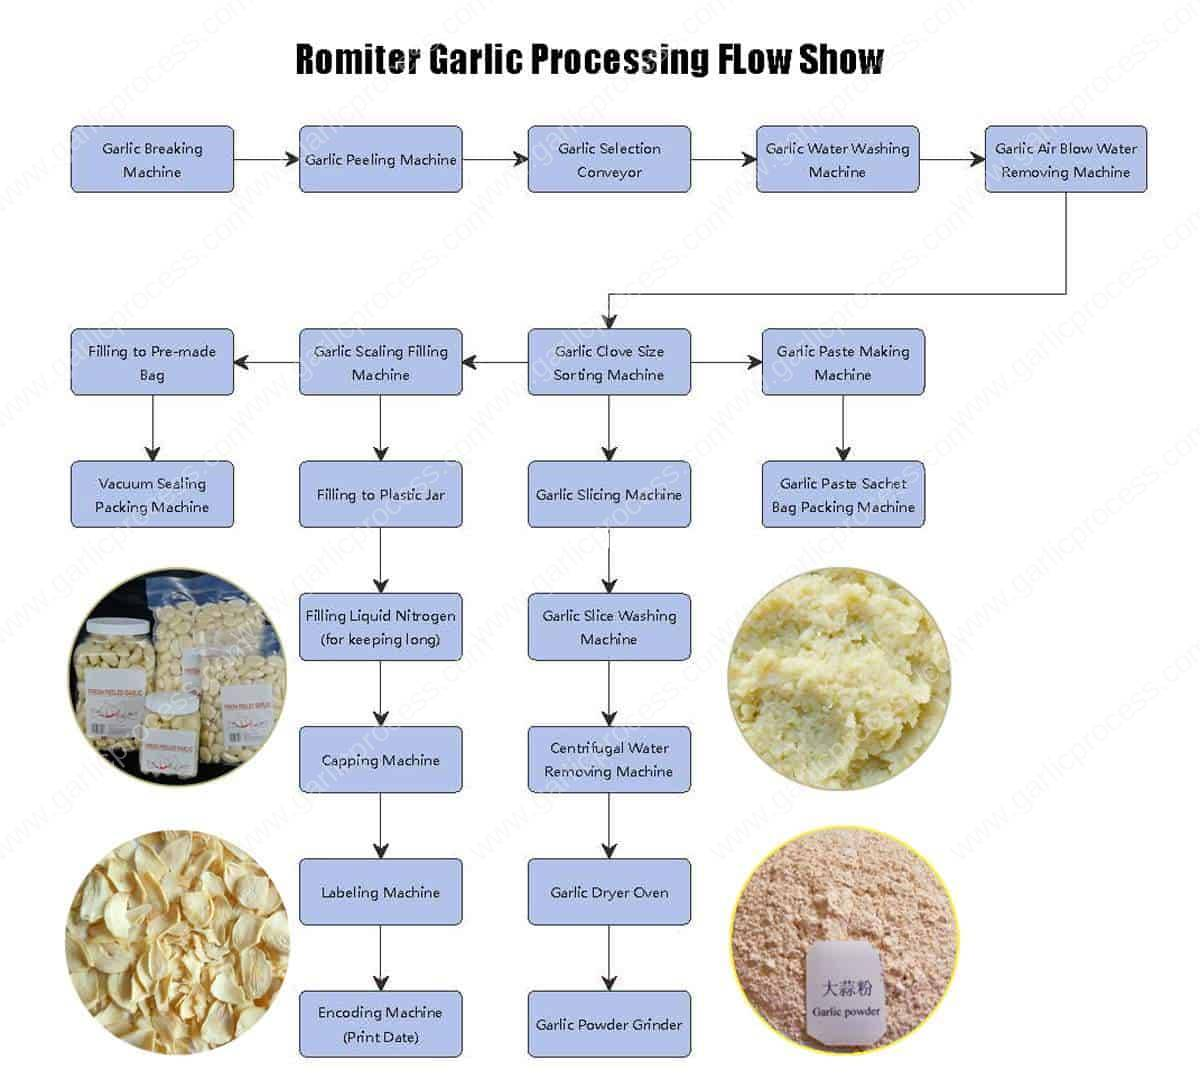 Romiter-Garlic-Processing-Flow-System-Drawing